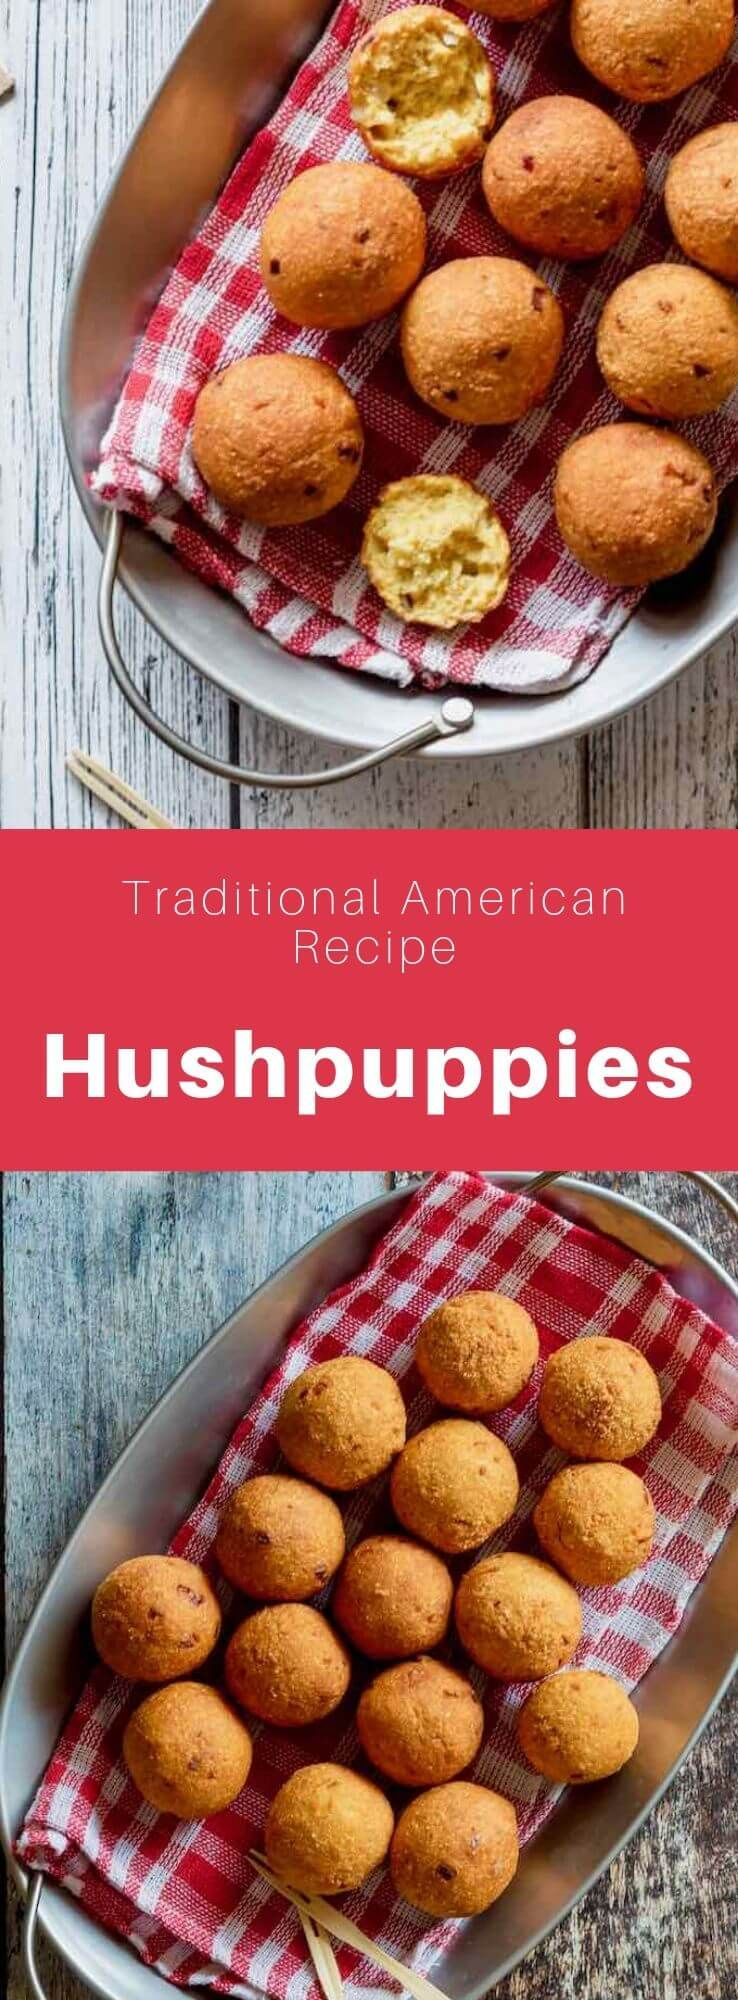 Hushpuppies are delicious little fried balls prepared with